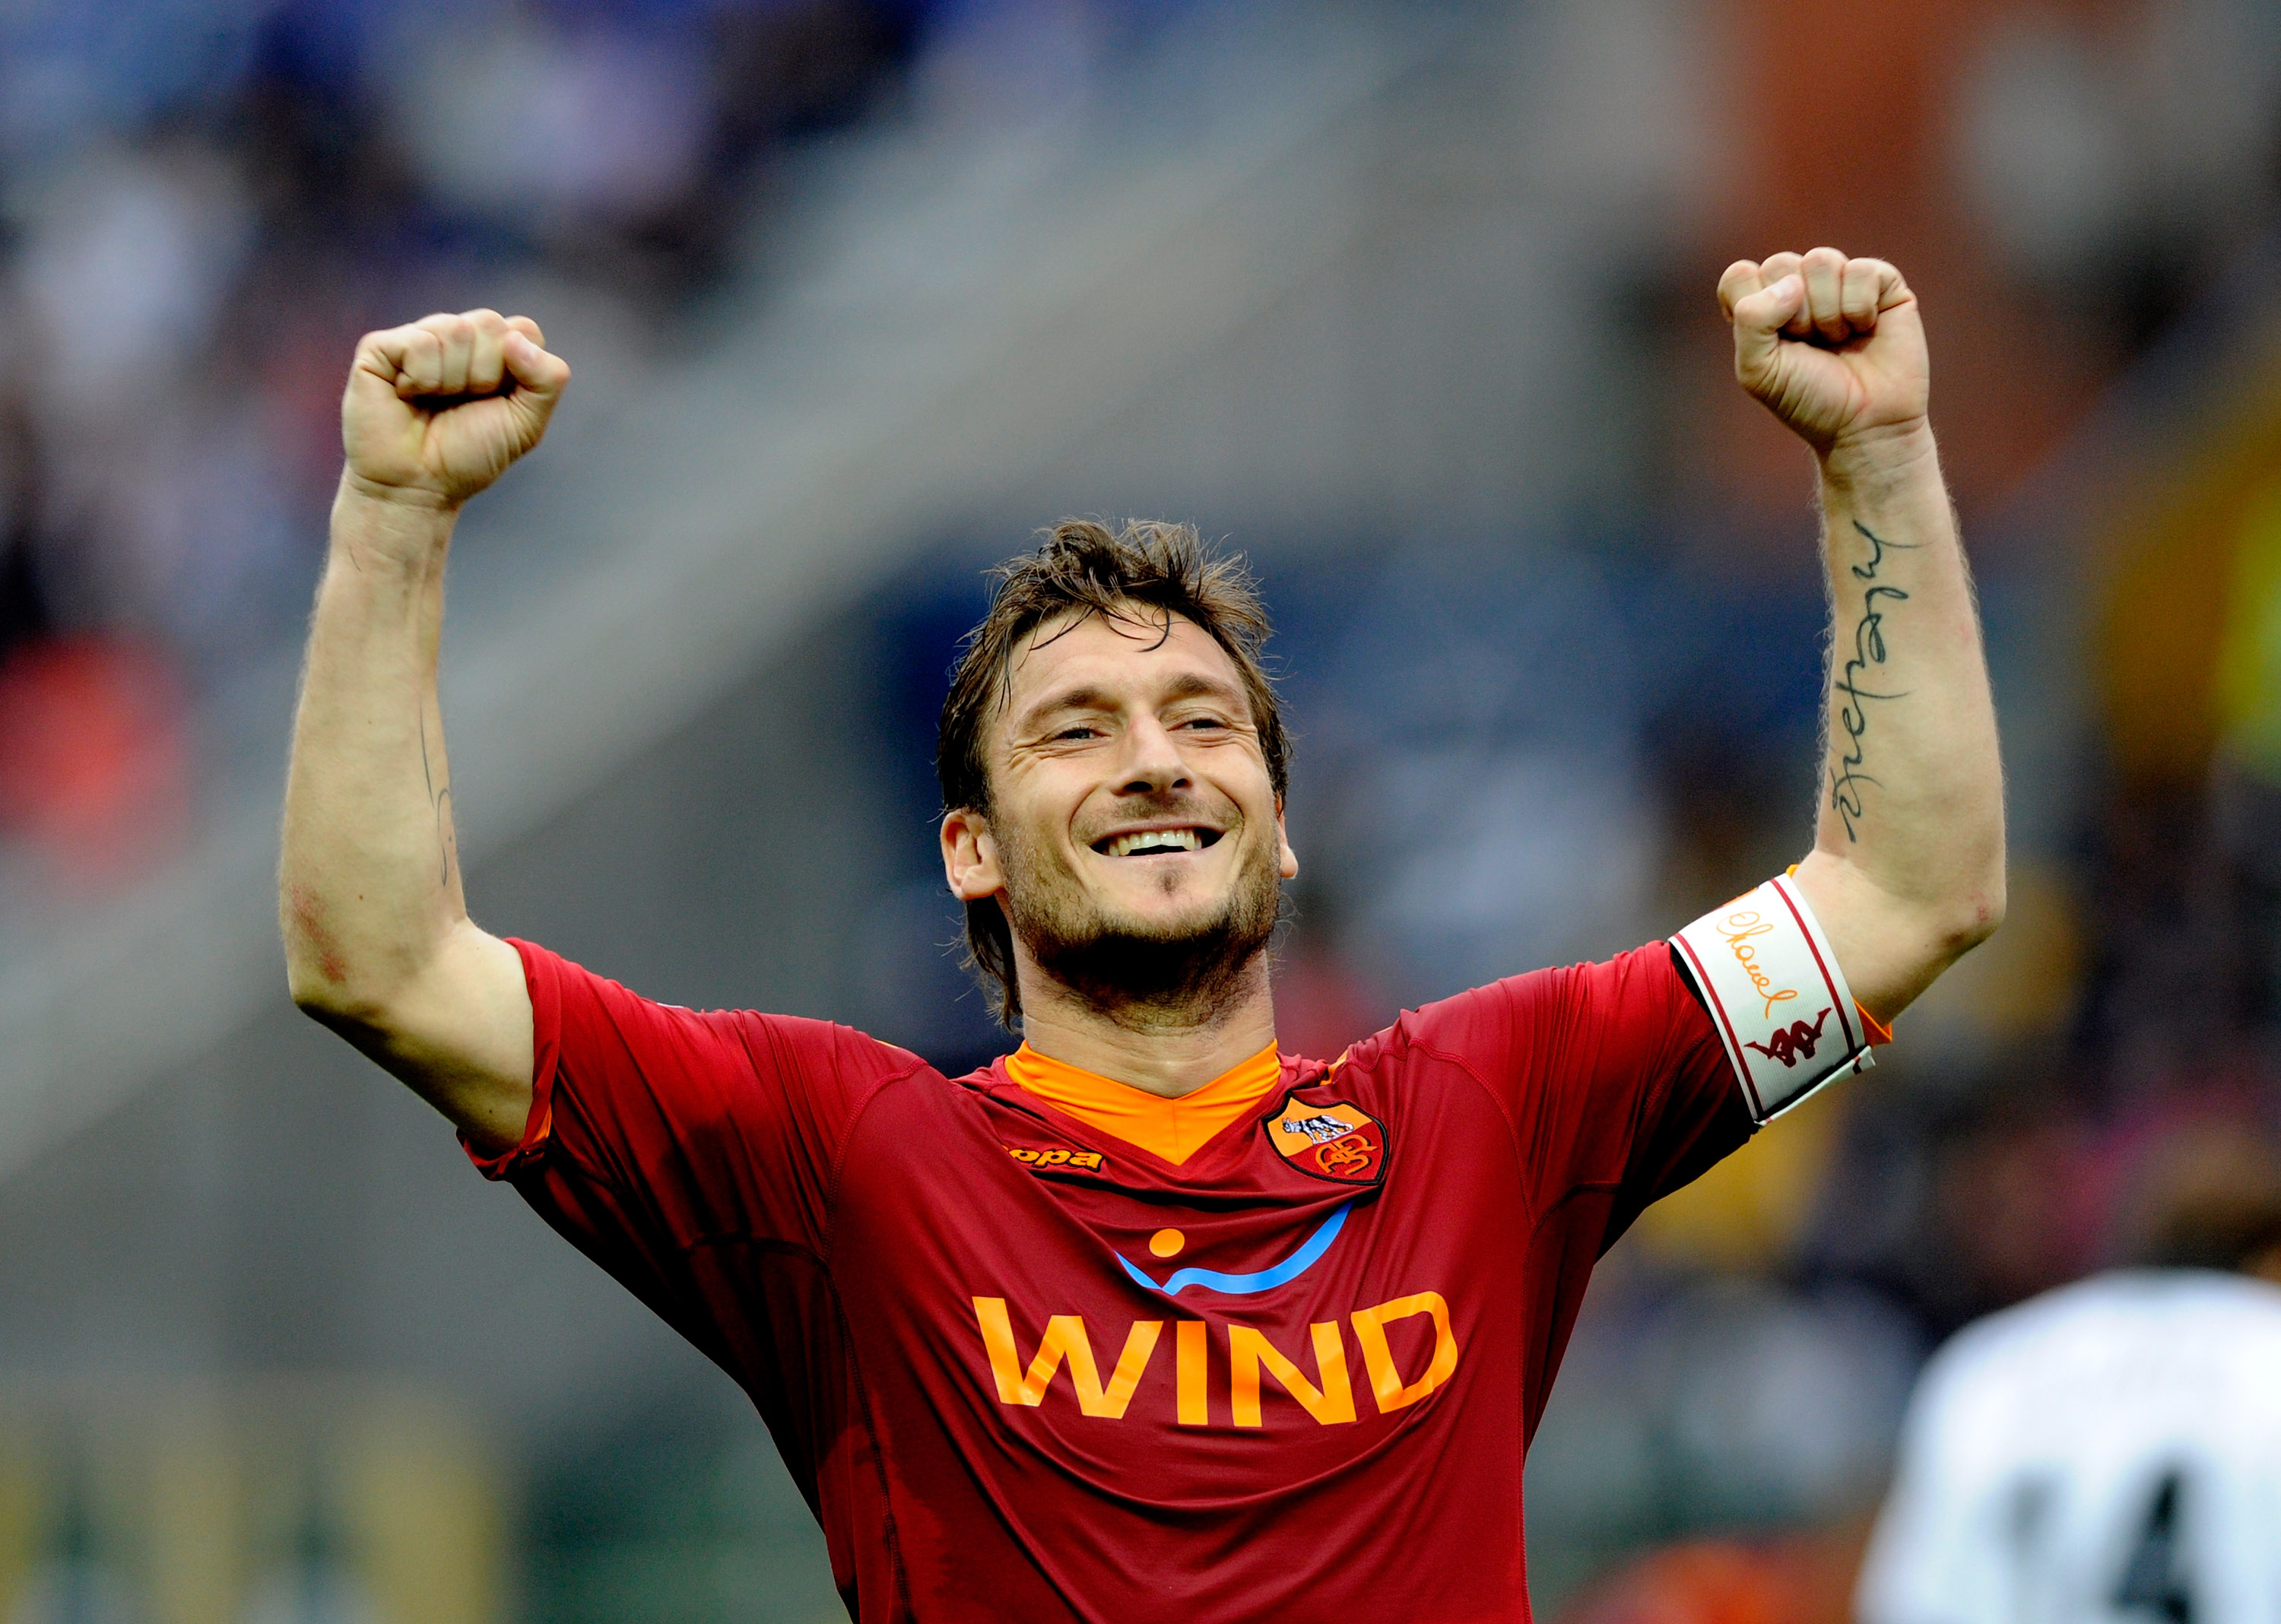 PARMA, ITALY - MAY 01:  Francesco Totti of AS Roma celebrates after the second goal during the Serie A match between  Parma FC and AS Roma at Stadio Ennio Tardini on May 1, 2010 in Parma, Italy.  (Photo by Claudio Villa/Getty Images)